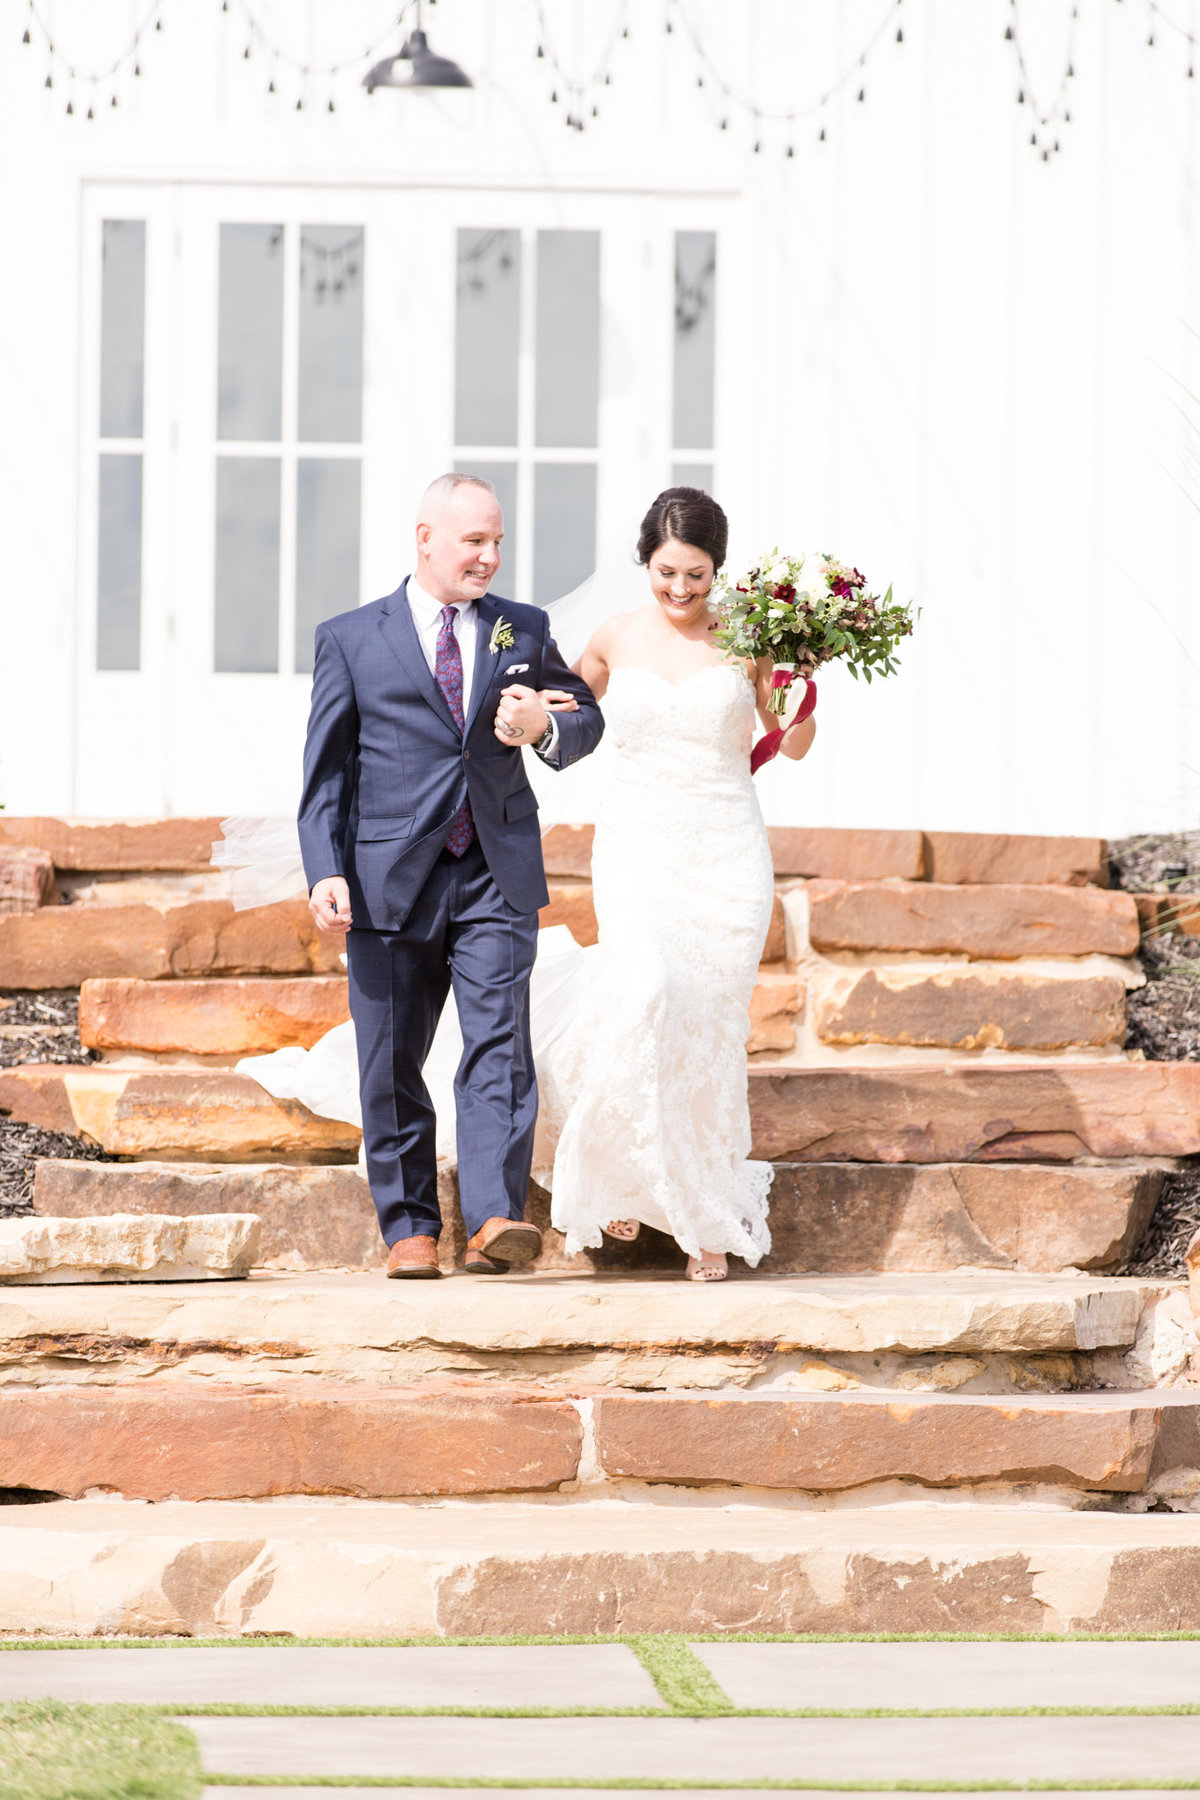 Nick & Sam Wedding | The Nest at Ruth Farms | Sami Kathryn Photography | Dallas Wedding Photographer-117